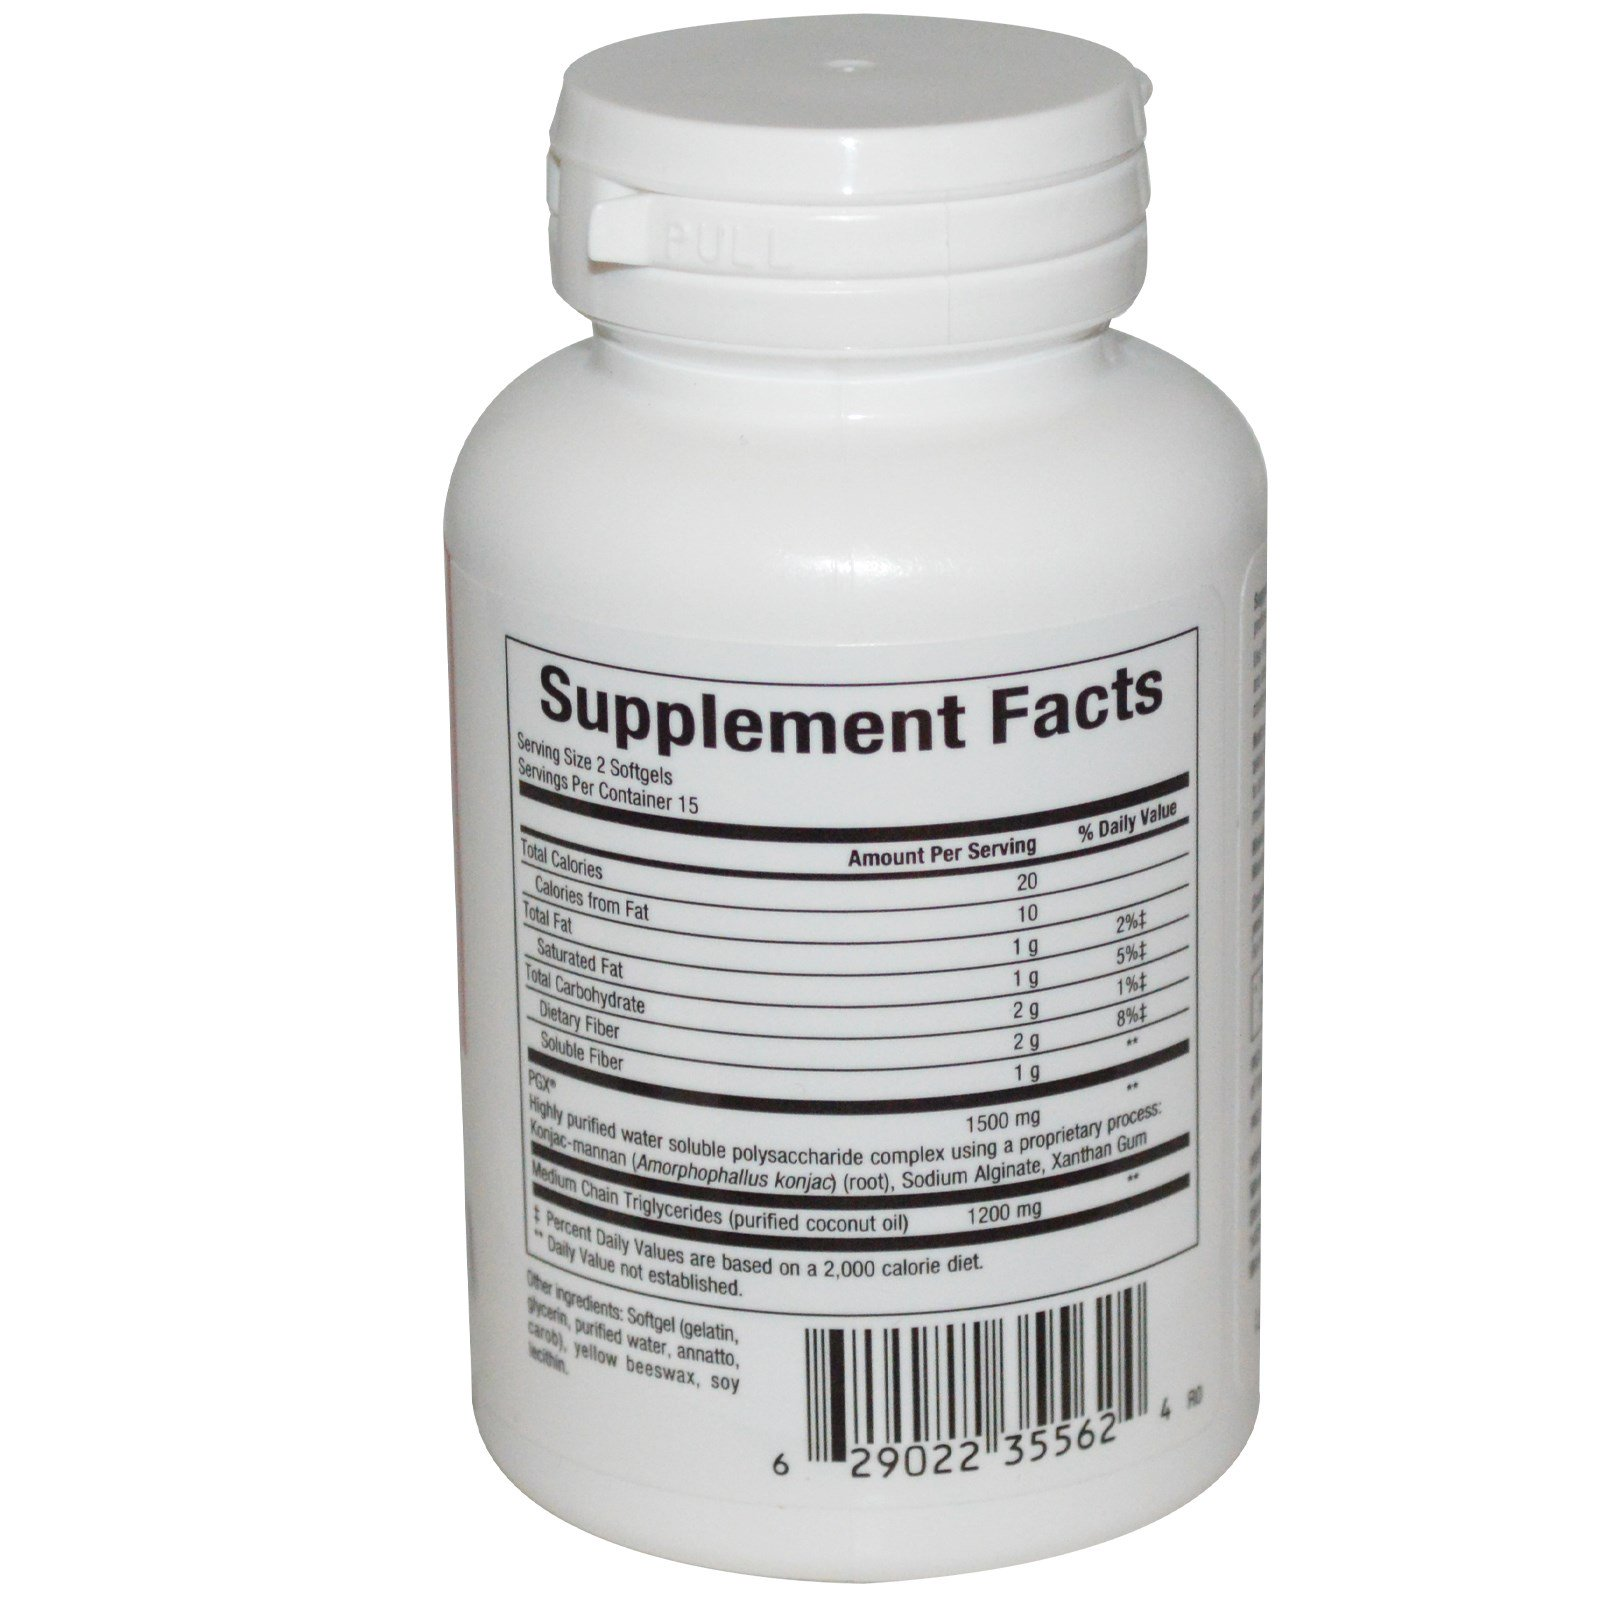 Do you lose weight on anxiety medication